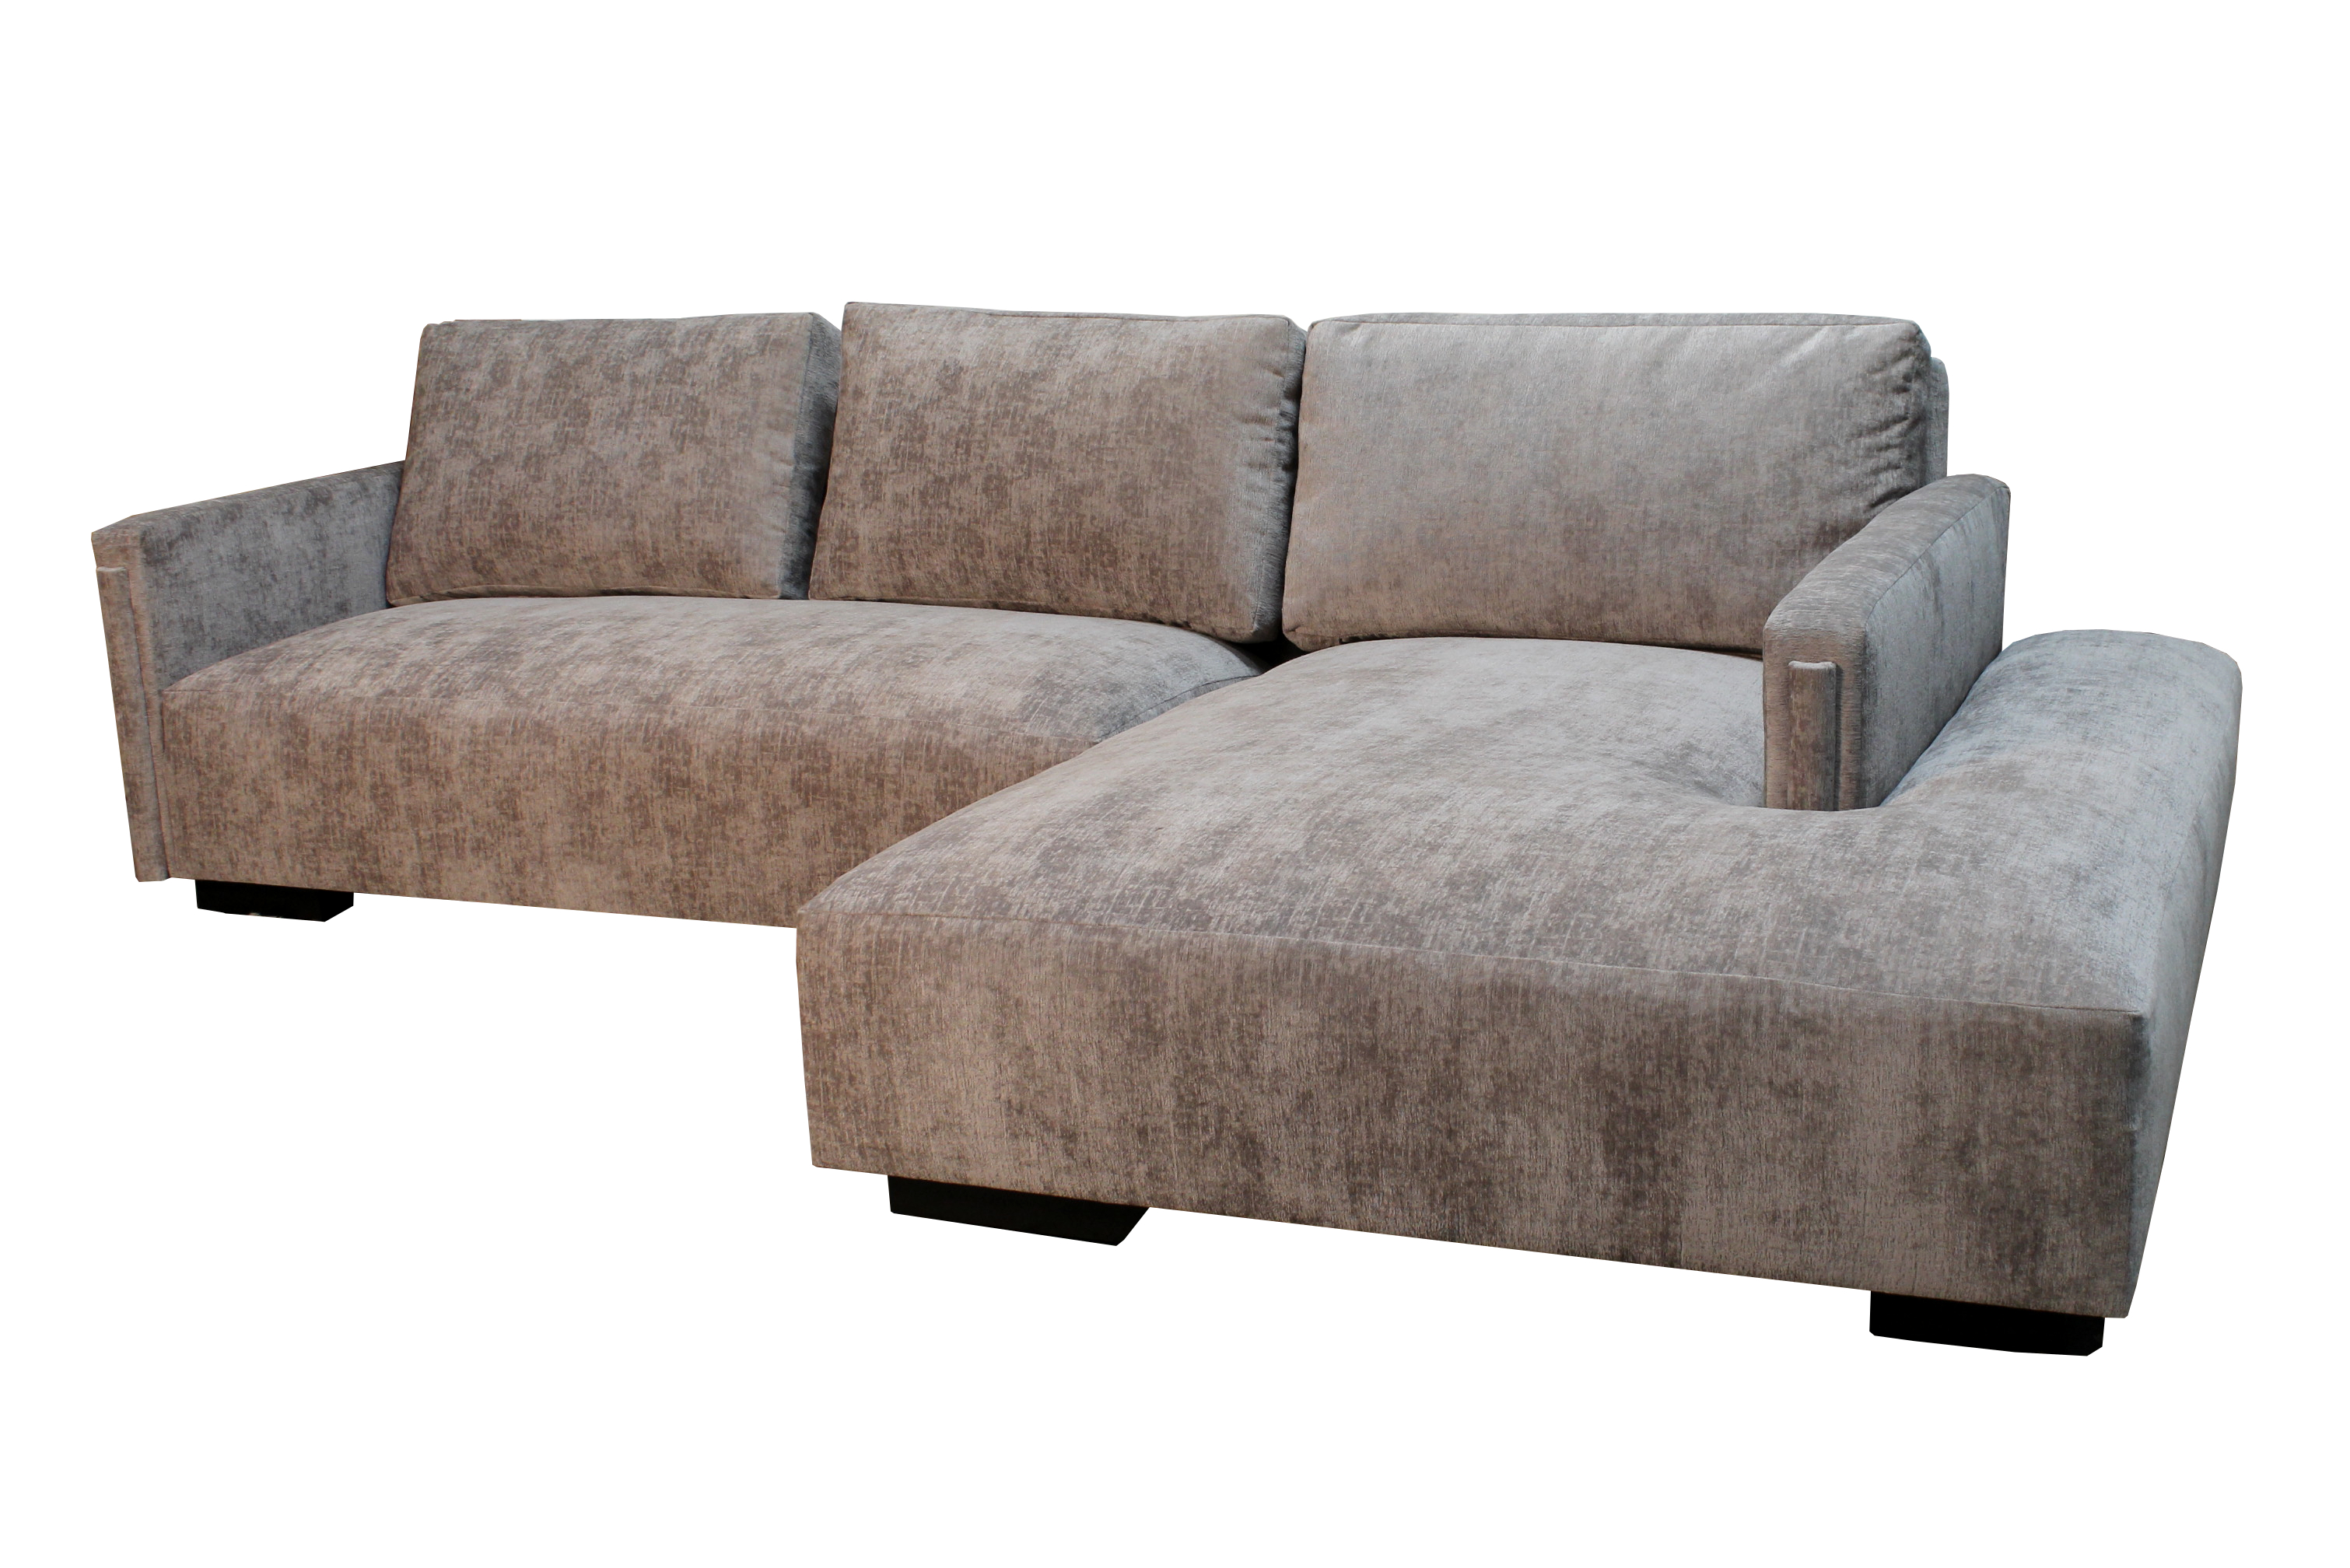 Peninsula Home Collection Winston sectional